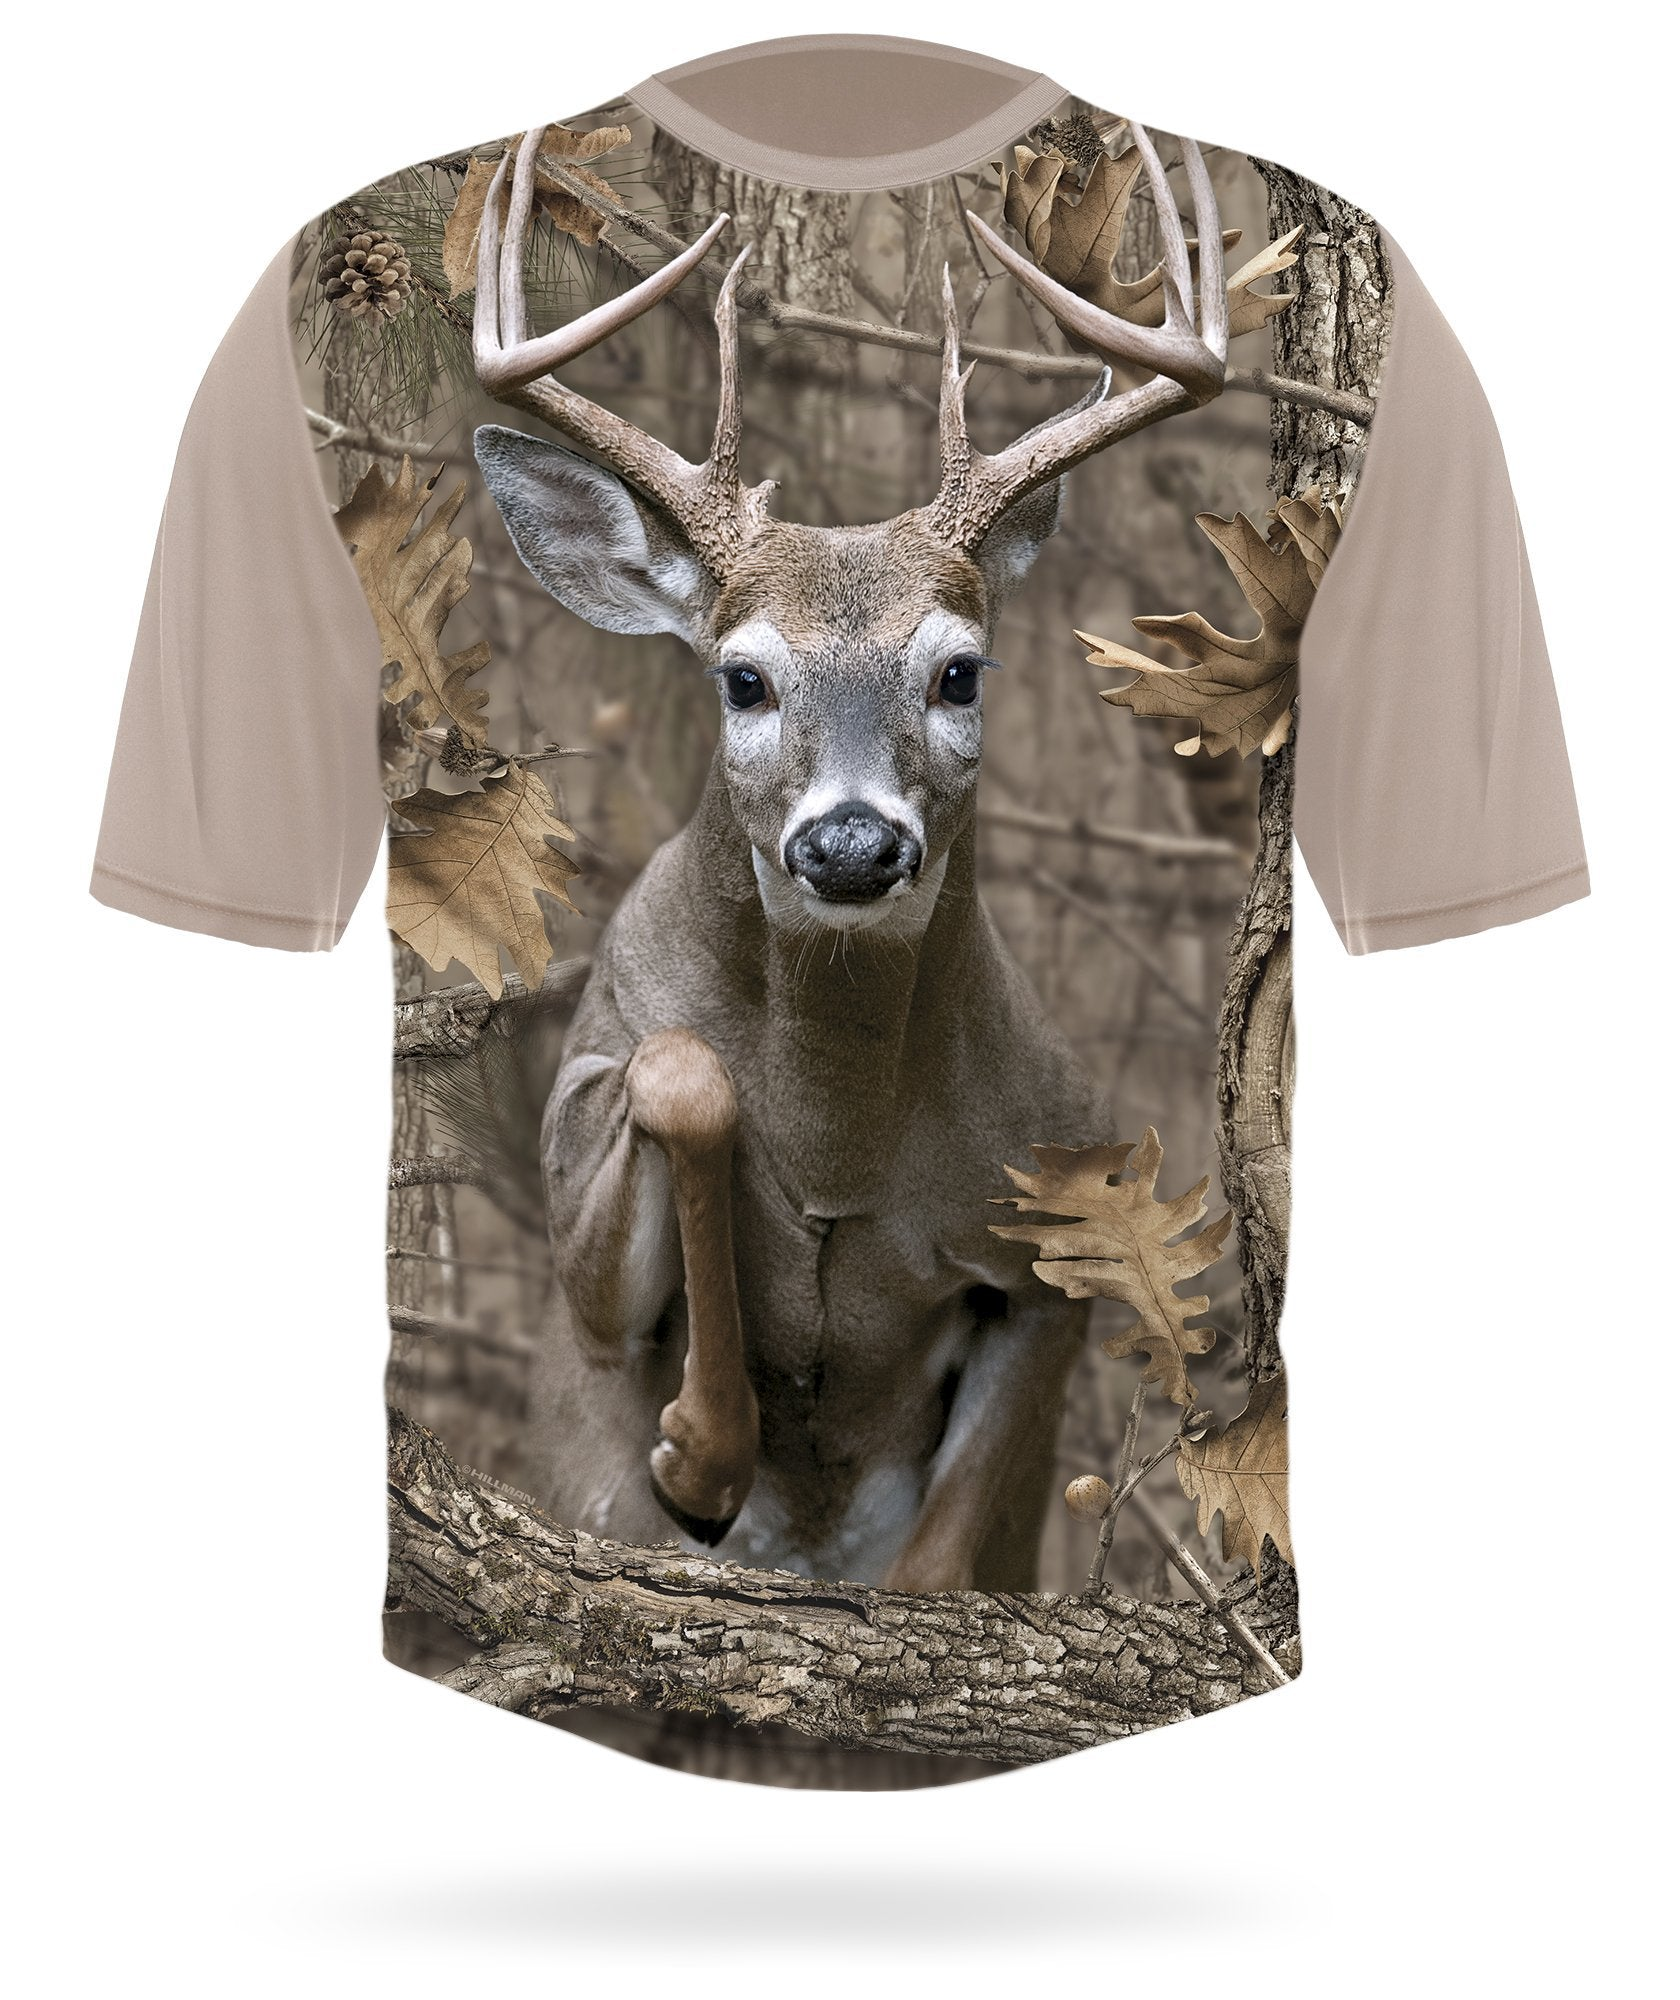 Whitetail Deer T-shirt Jumping Short sleeve camo -  HILLMAN® hunting gear